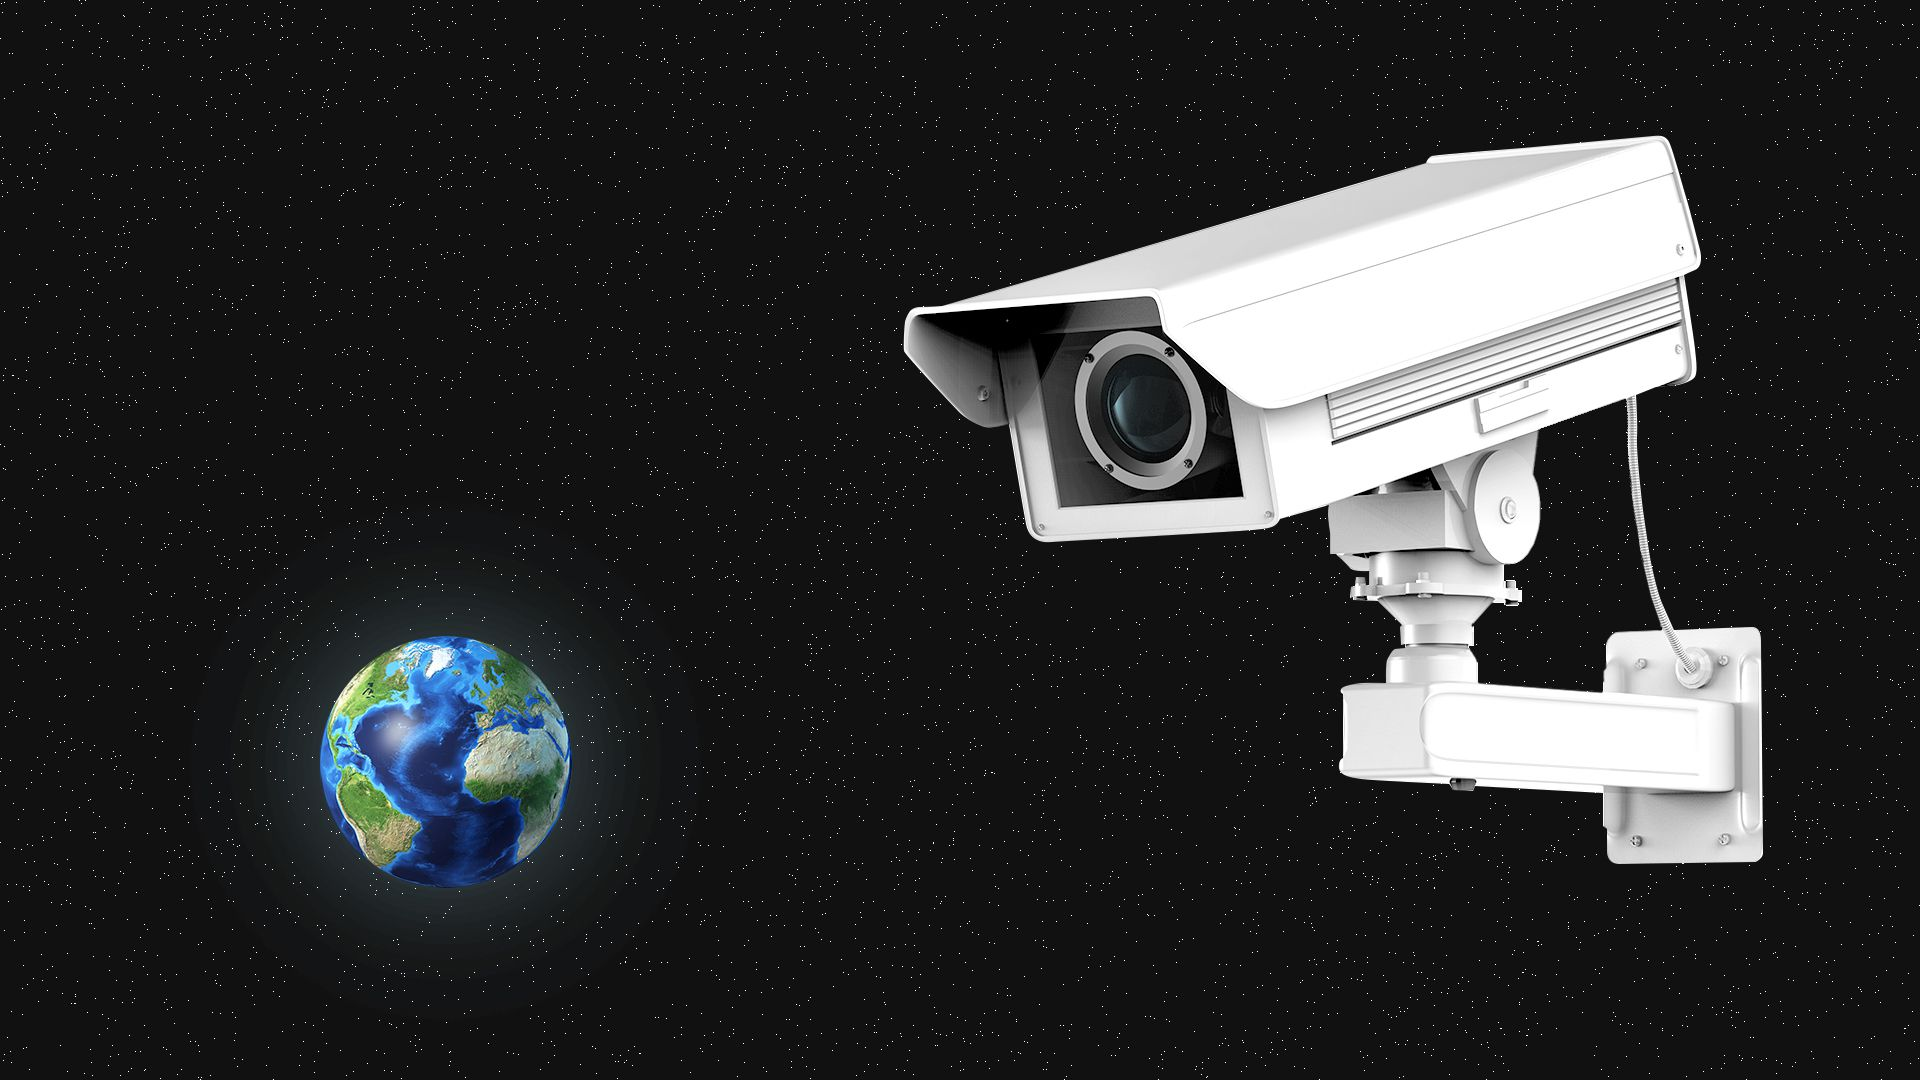 Illustration of a large surveillance camera examining a small Earth in orbit.